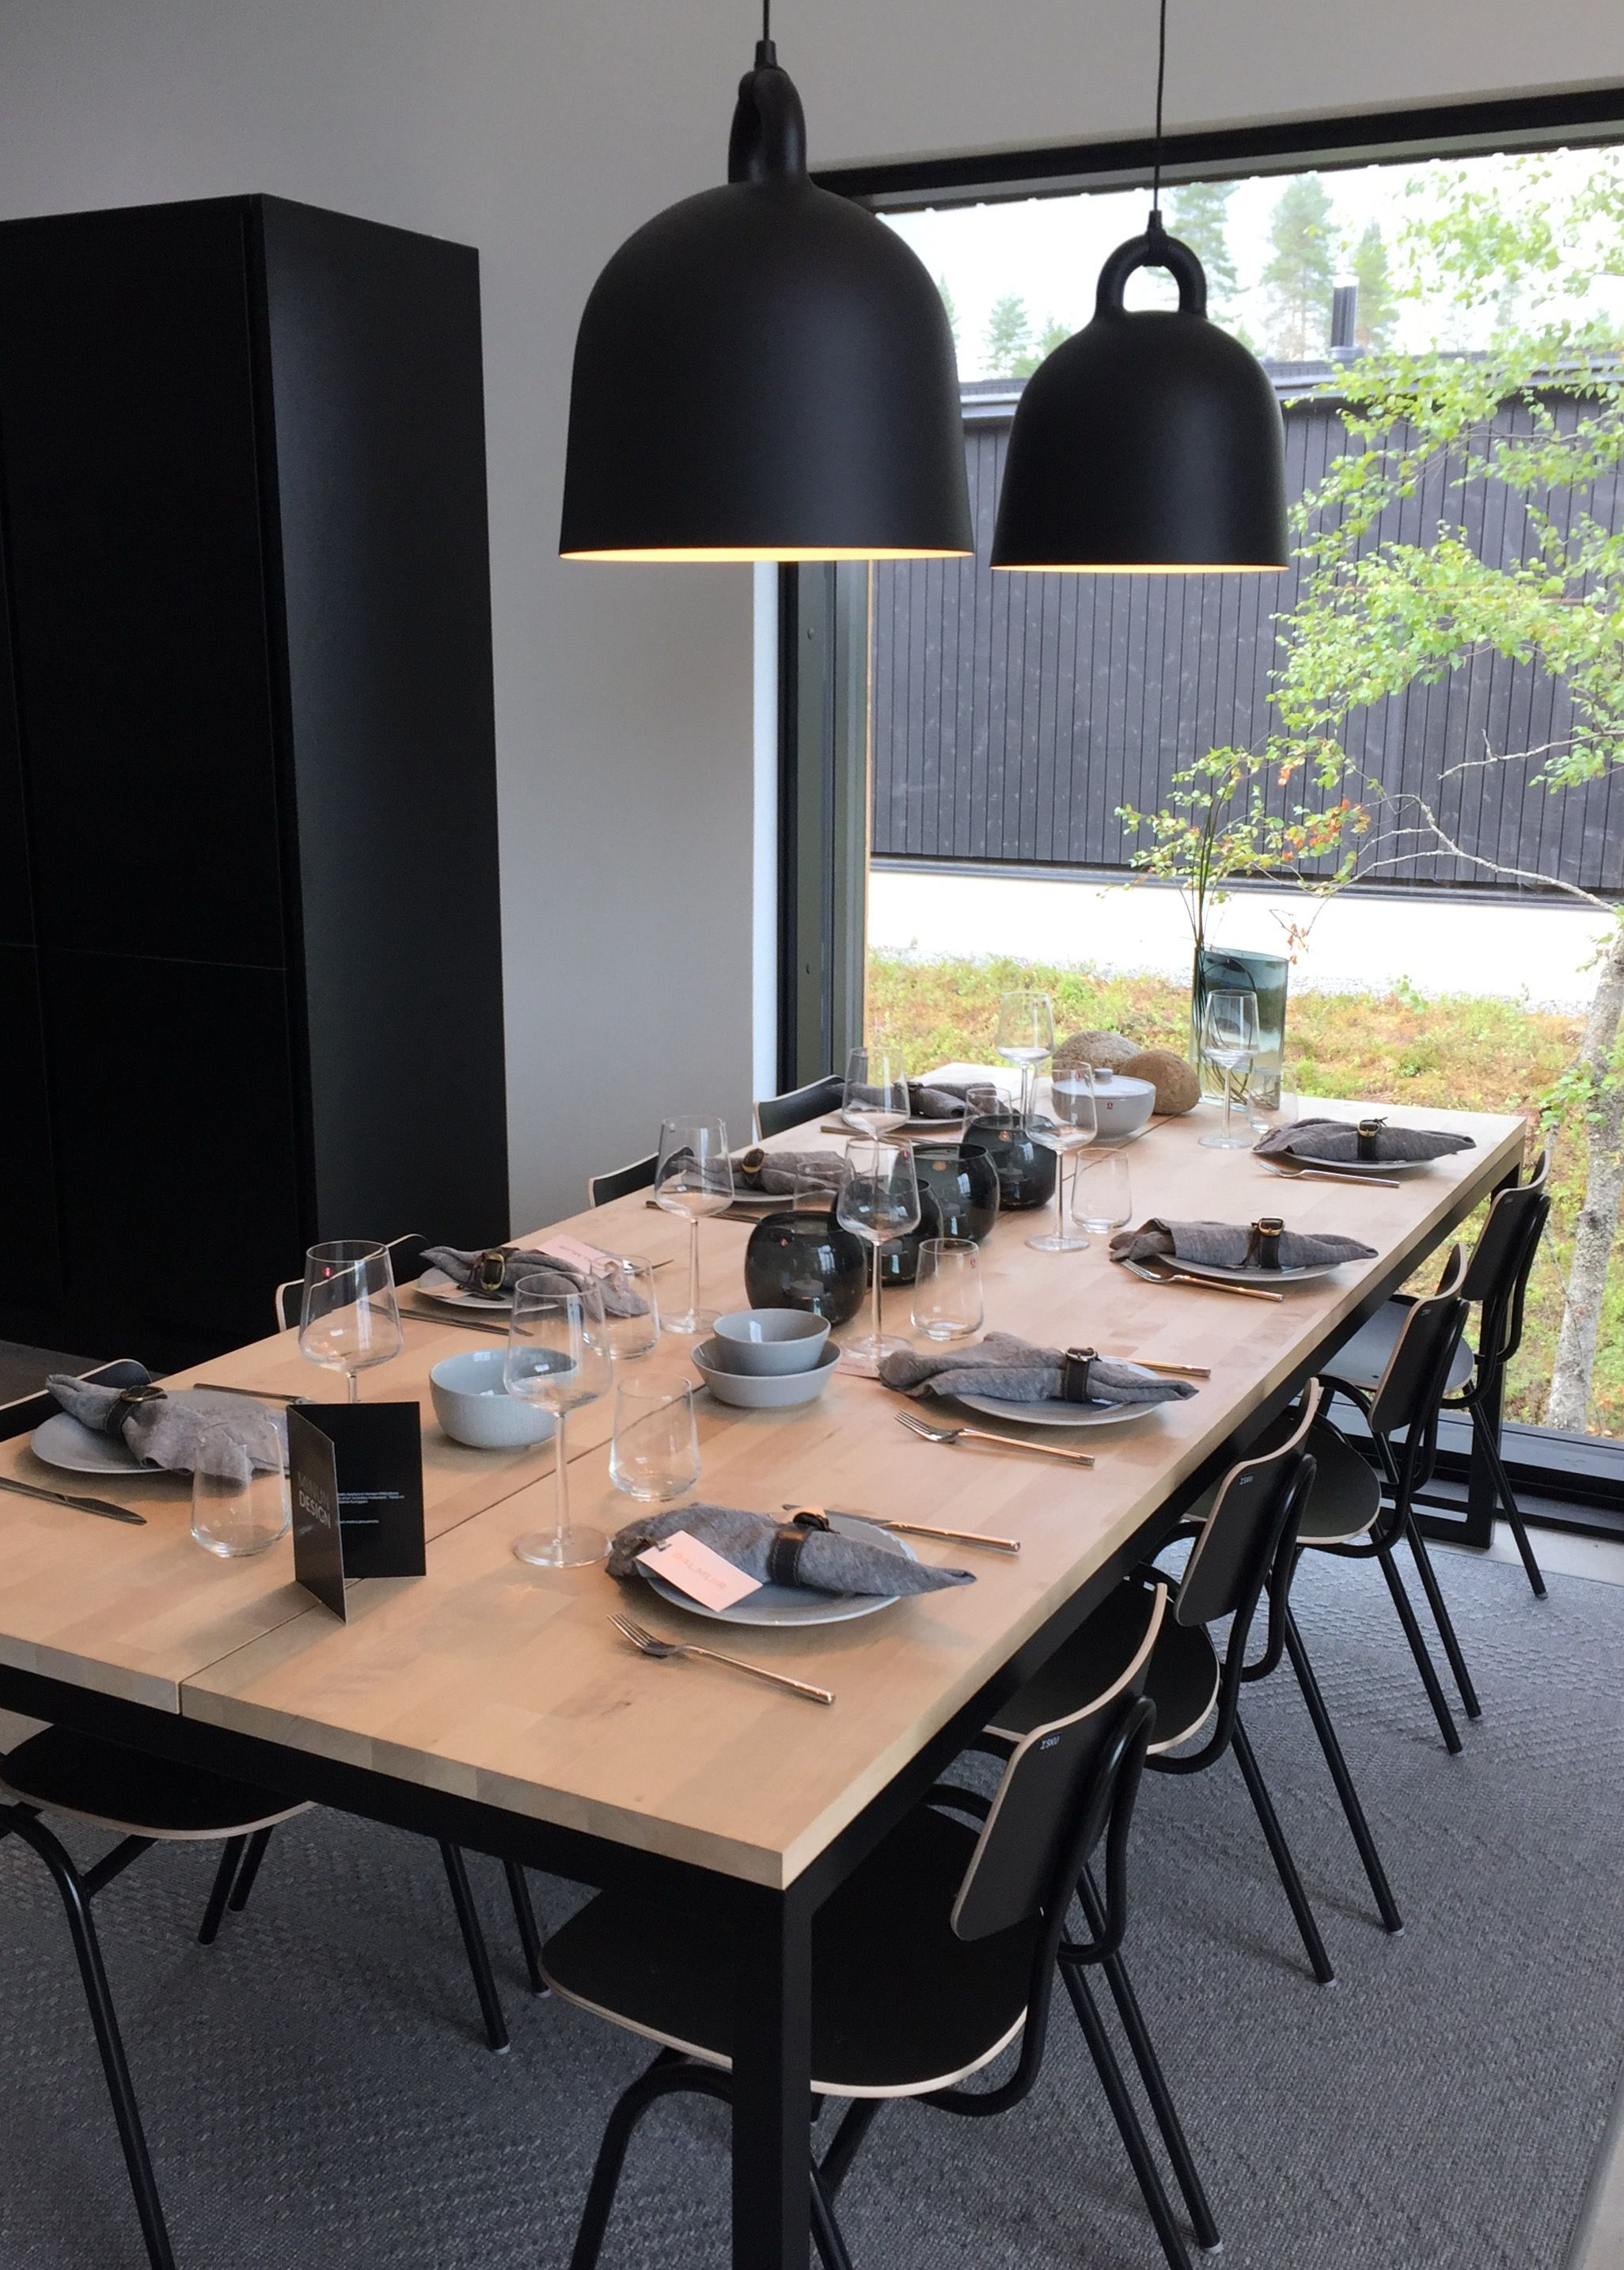 diningroom minunloft in mikkeli housingfair 2017 interior rh pinterest co uk